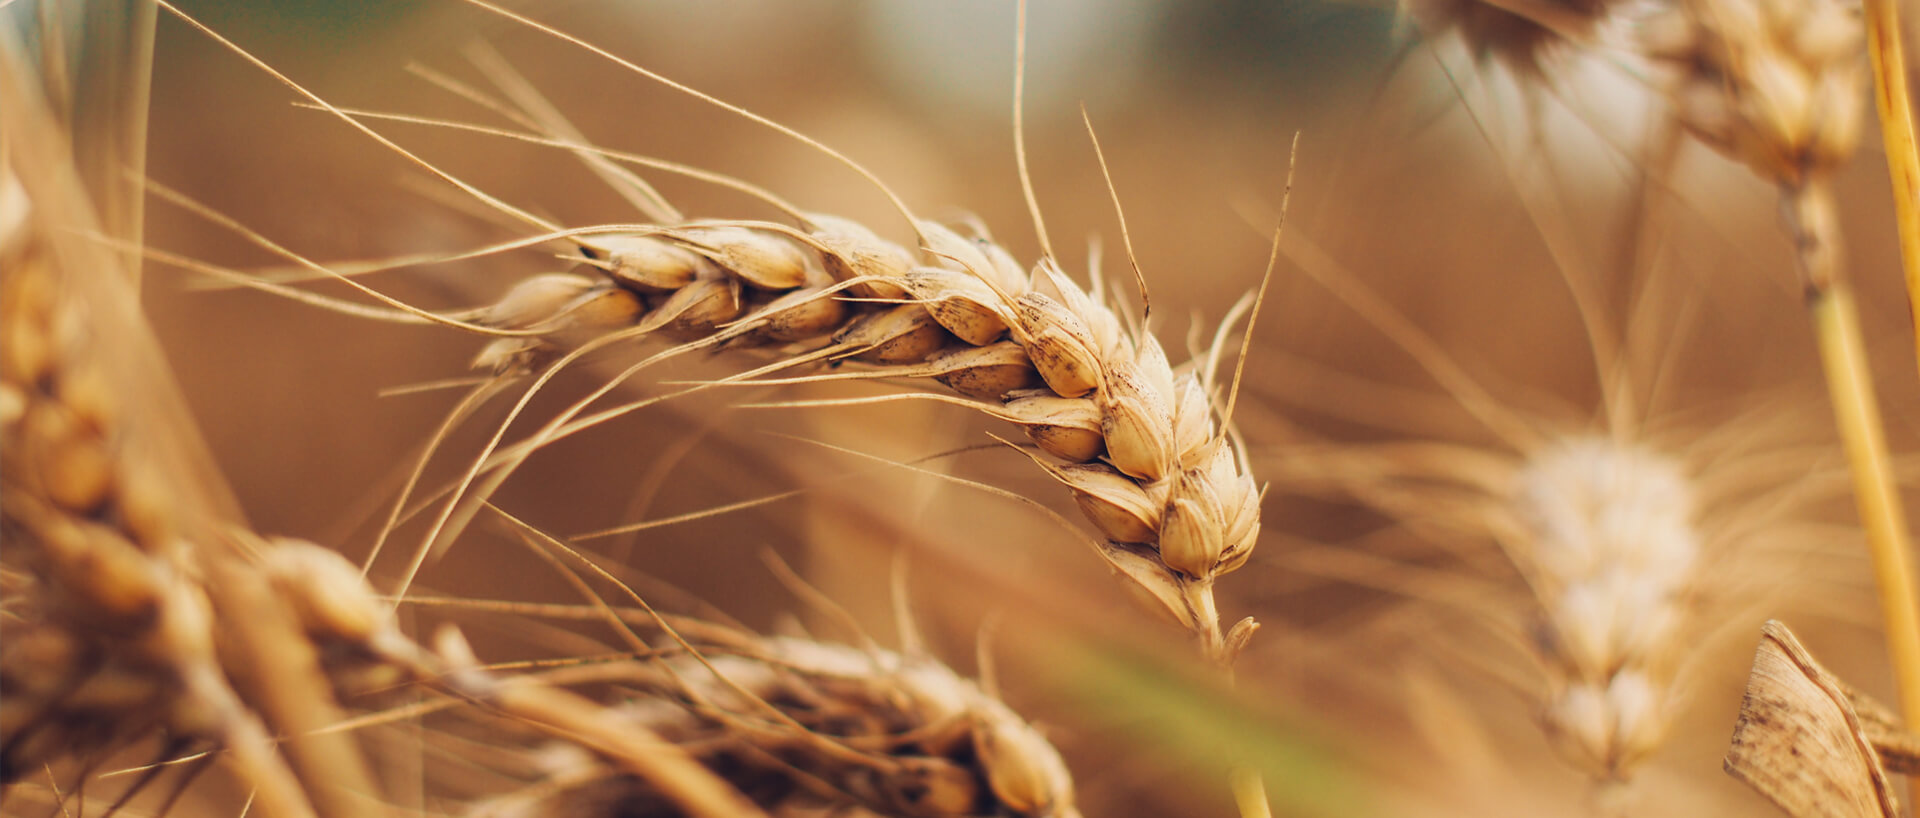 Close-up of a stalk of hay